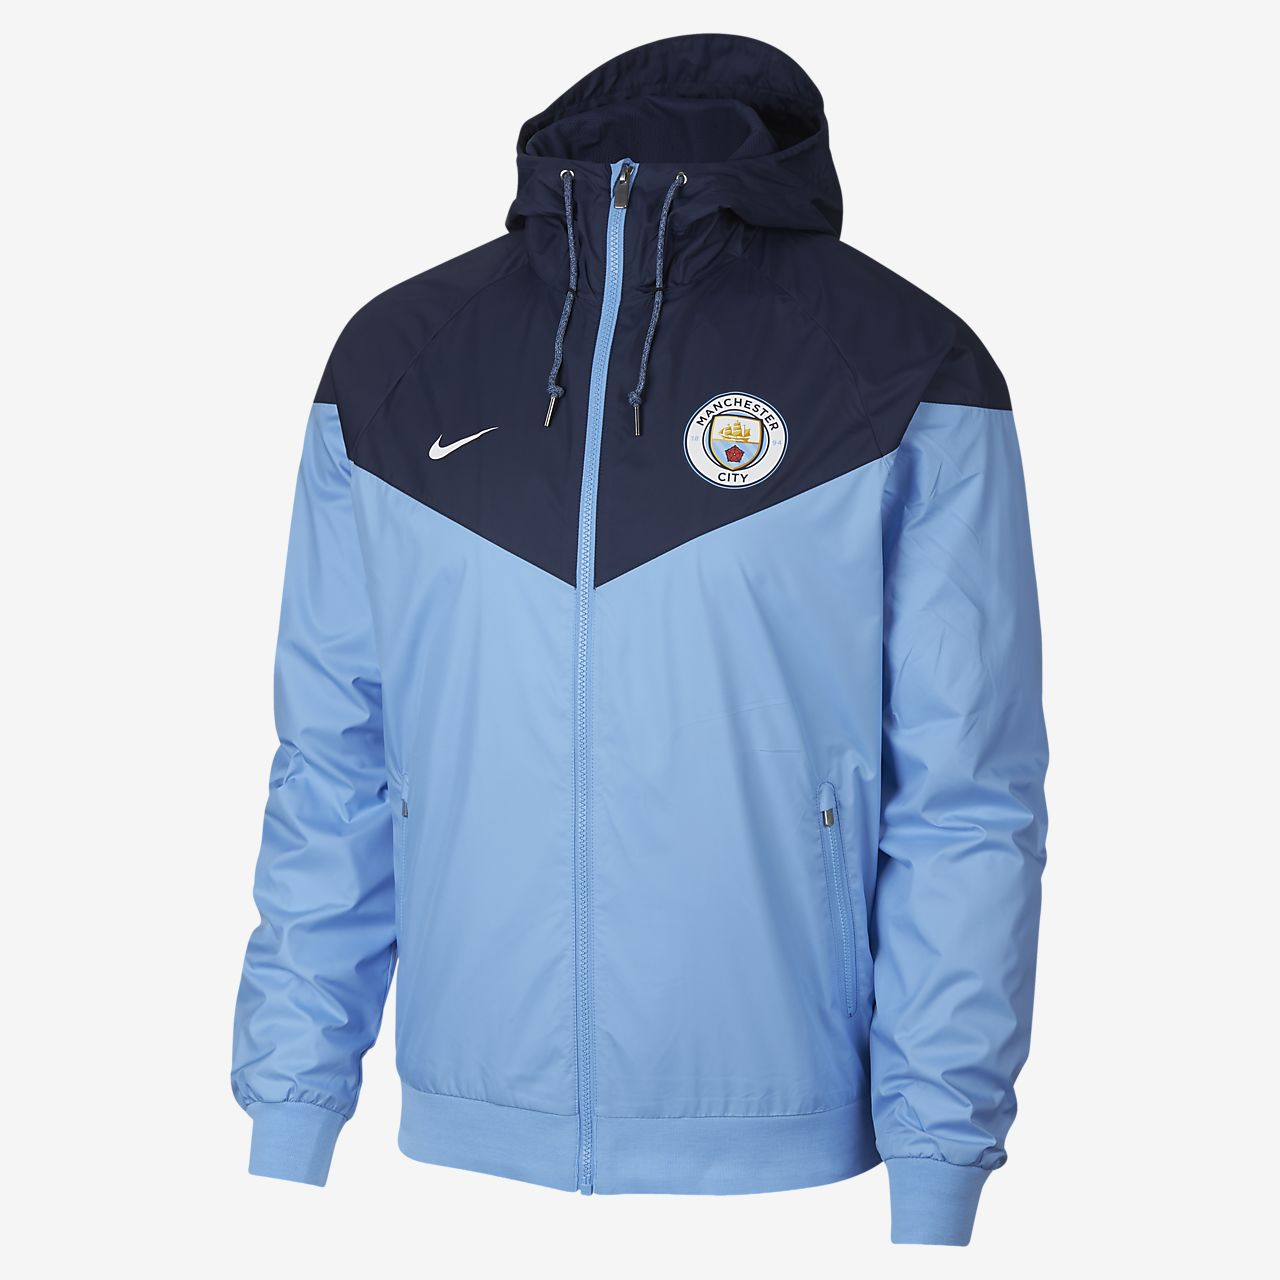 Manchester City FC Windrunner Men's Jacket